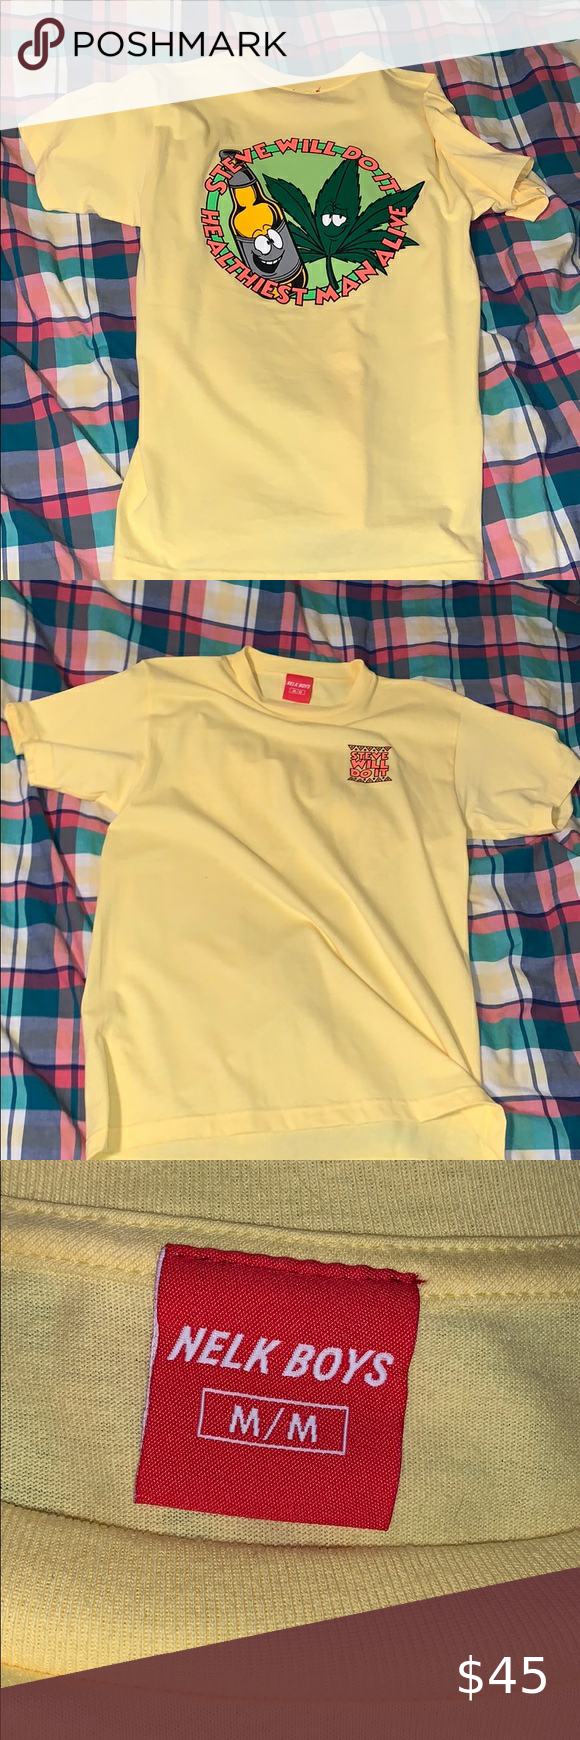 Stevewilldoit Nelk Boys Shirt Size M In 2020 Boys Shirts Supreme Shirt Shirt Size His birthday, what he did before fame, his family life, fun trivia facts his stevewilldoit instagram account has surpassed 2.5 million followers. stevewilldoit nelk boys shirt size m in